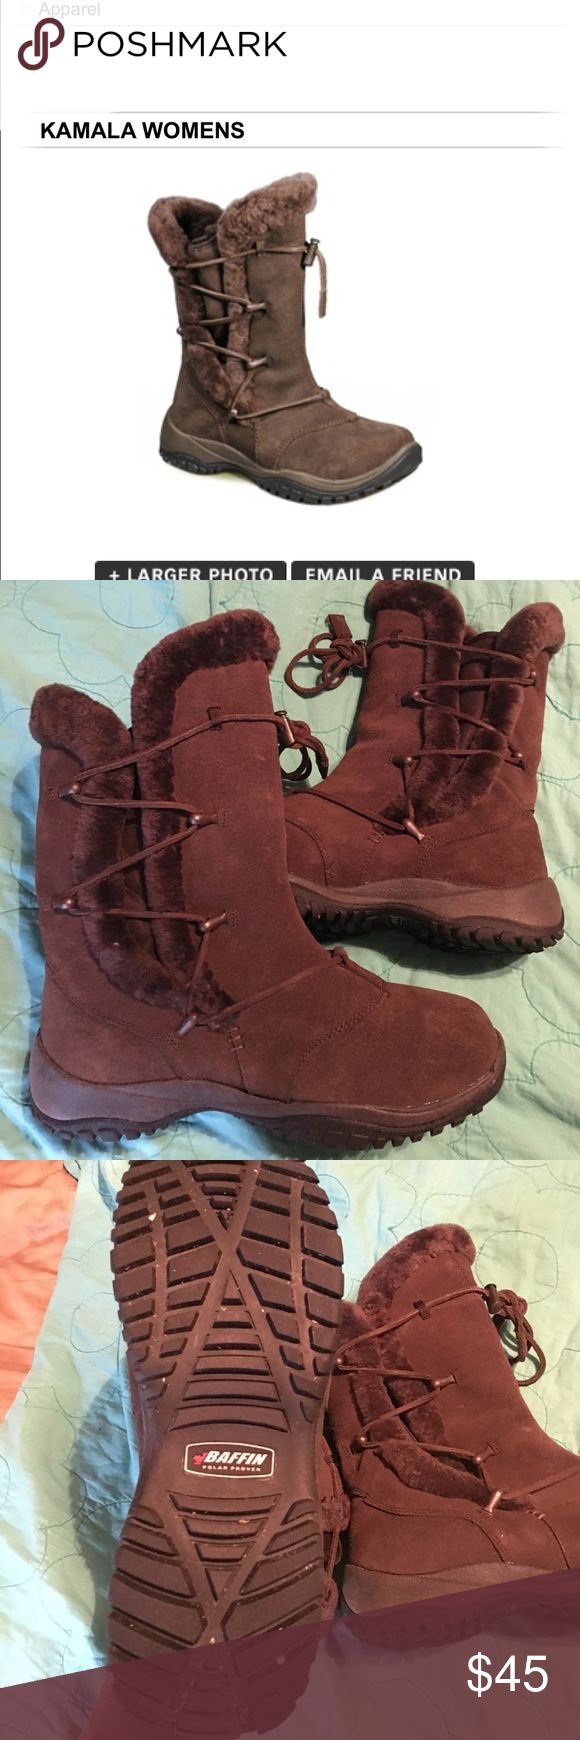 Baffin Kampala boots Like new worn once around the house. Baffin Shoes Winter & Rain Boots